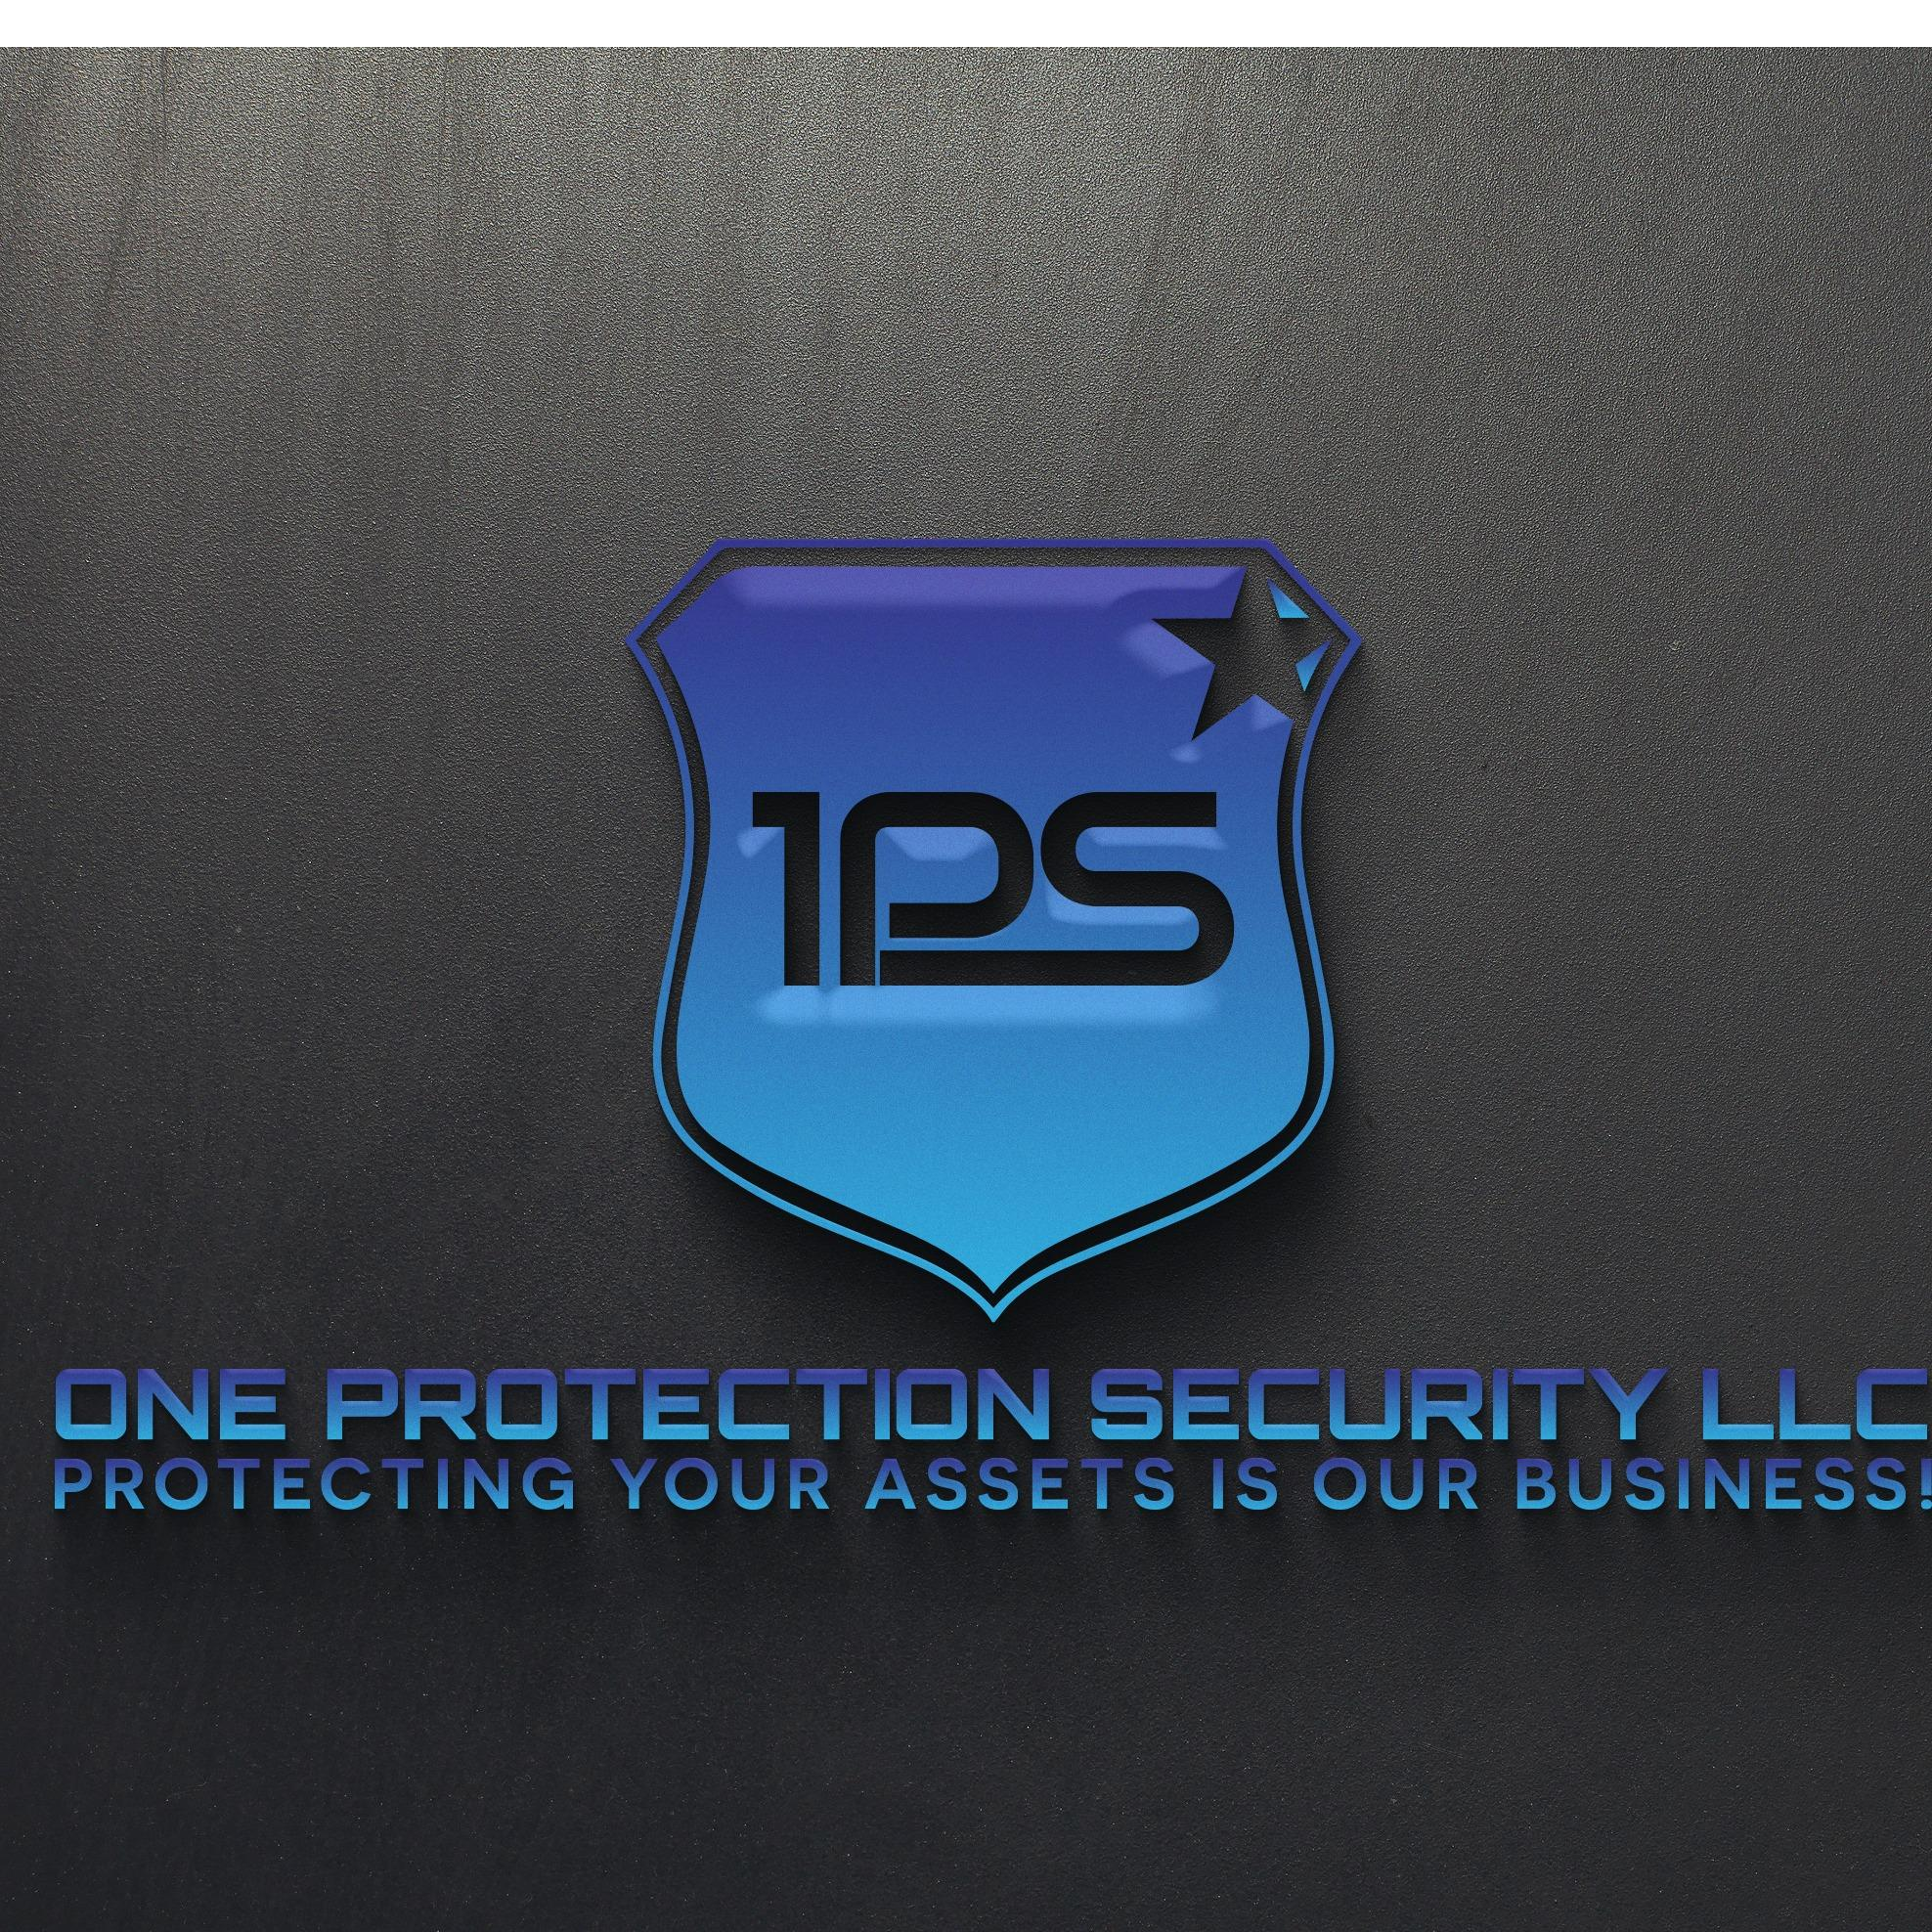 One Protection Security LLC